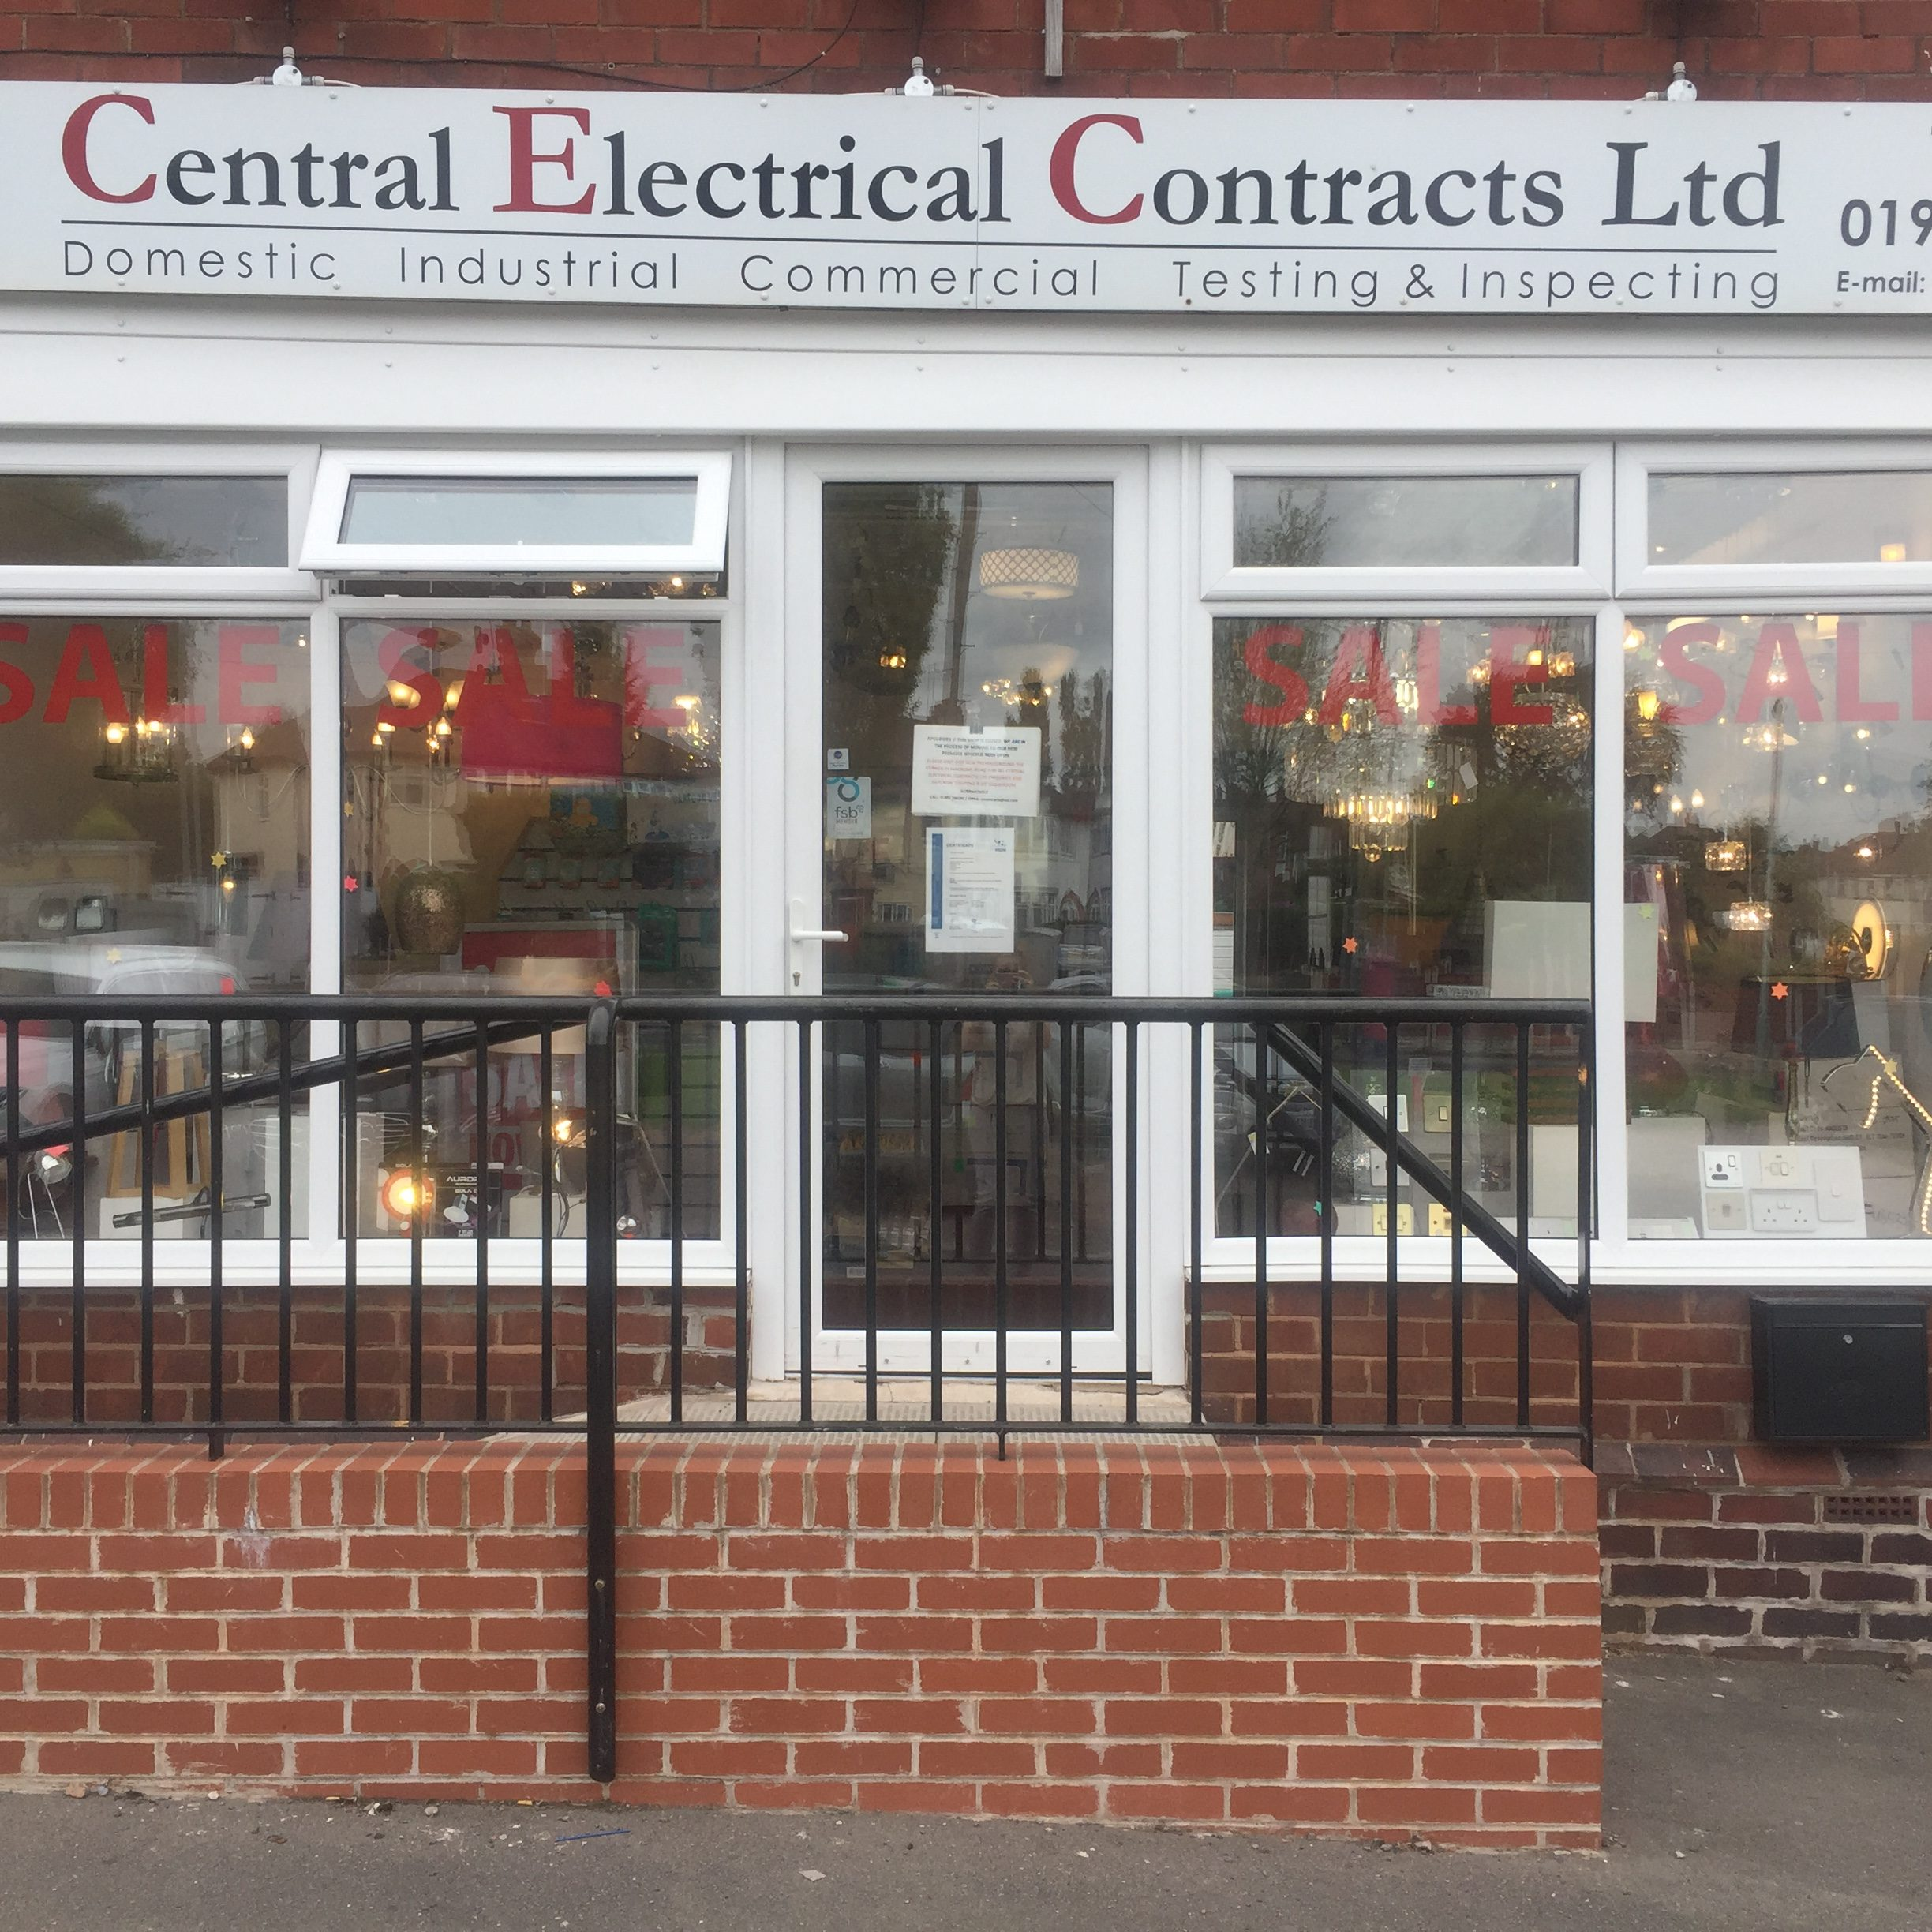 Central Electrical Contracts Ltd